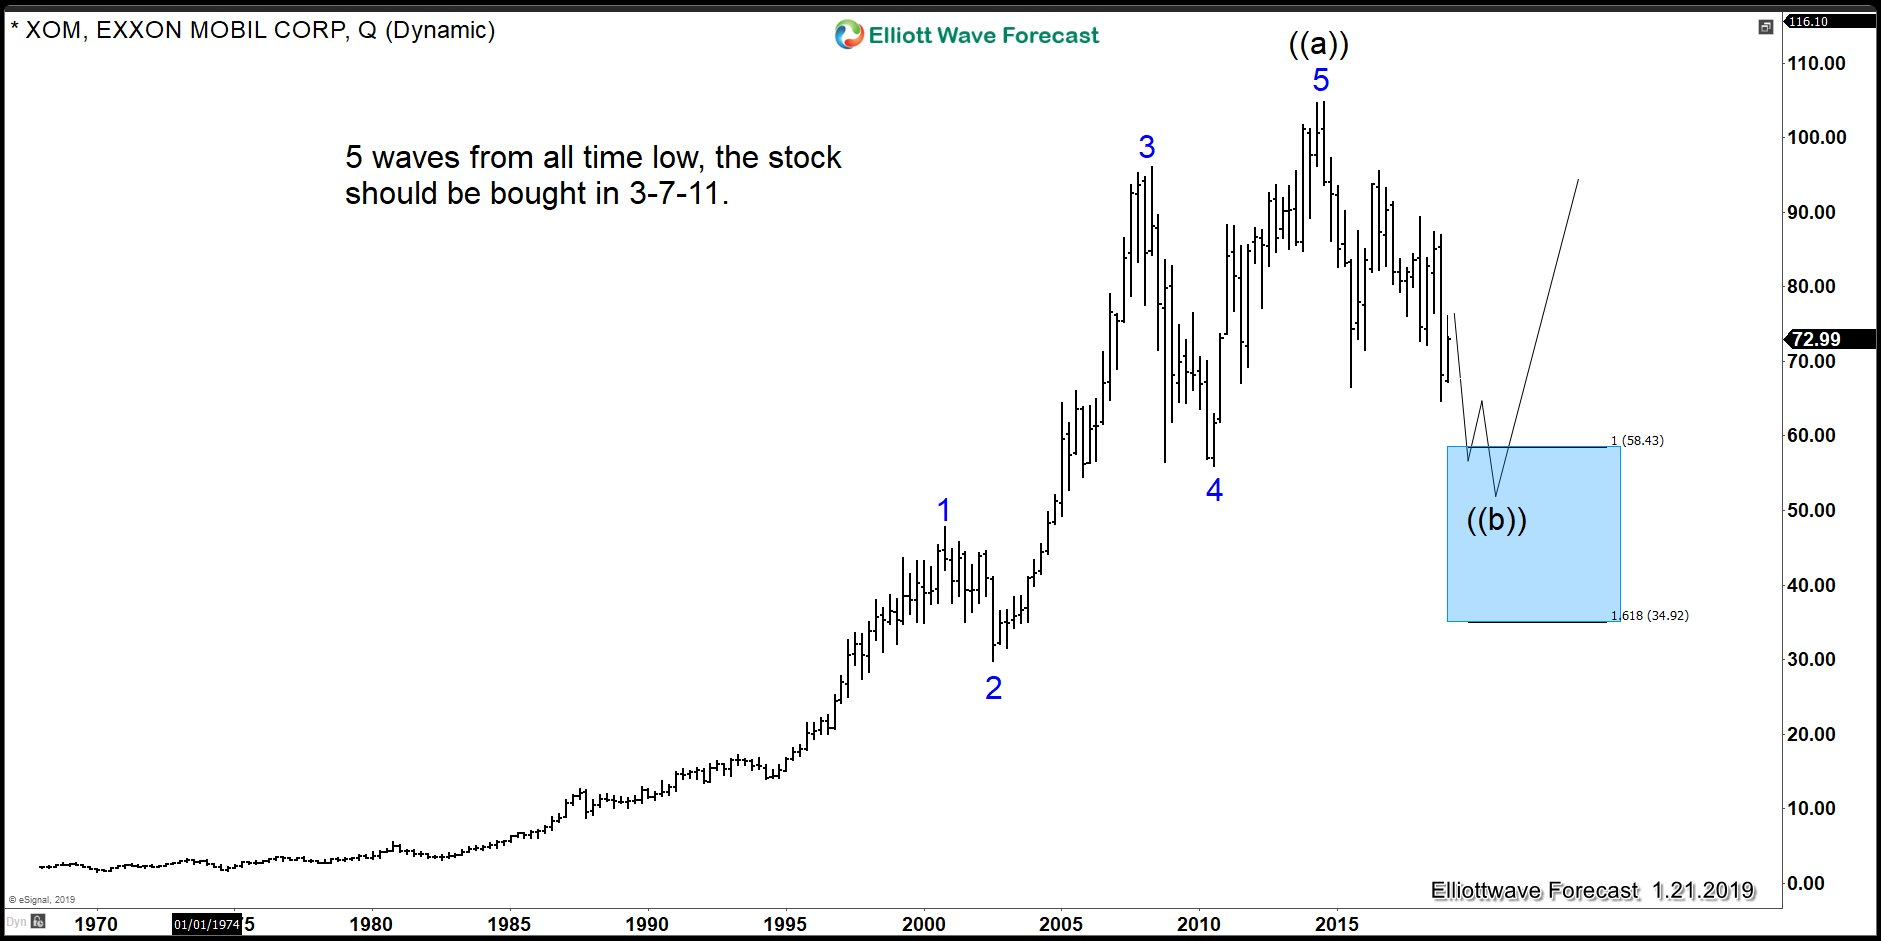 Exxon Mobil Elliott Wave chart showing buying area